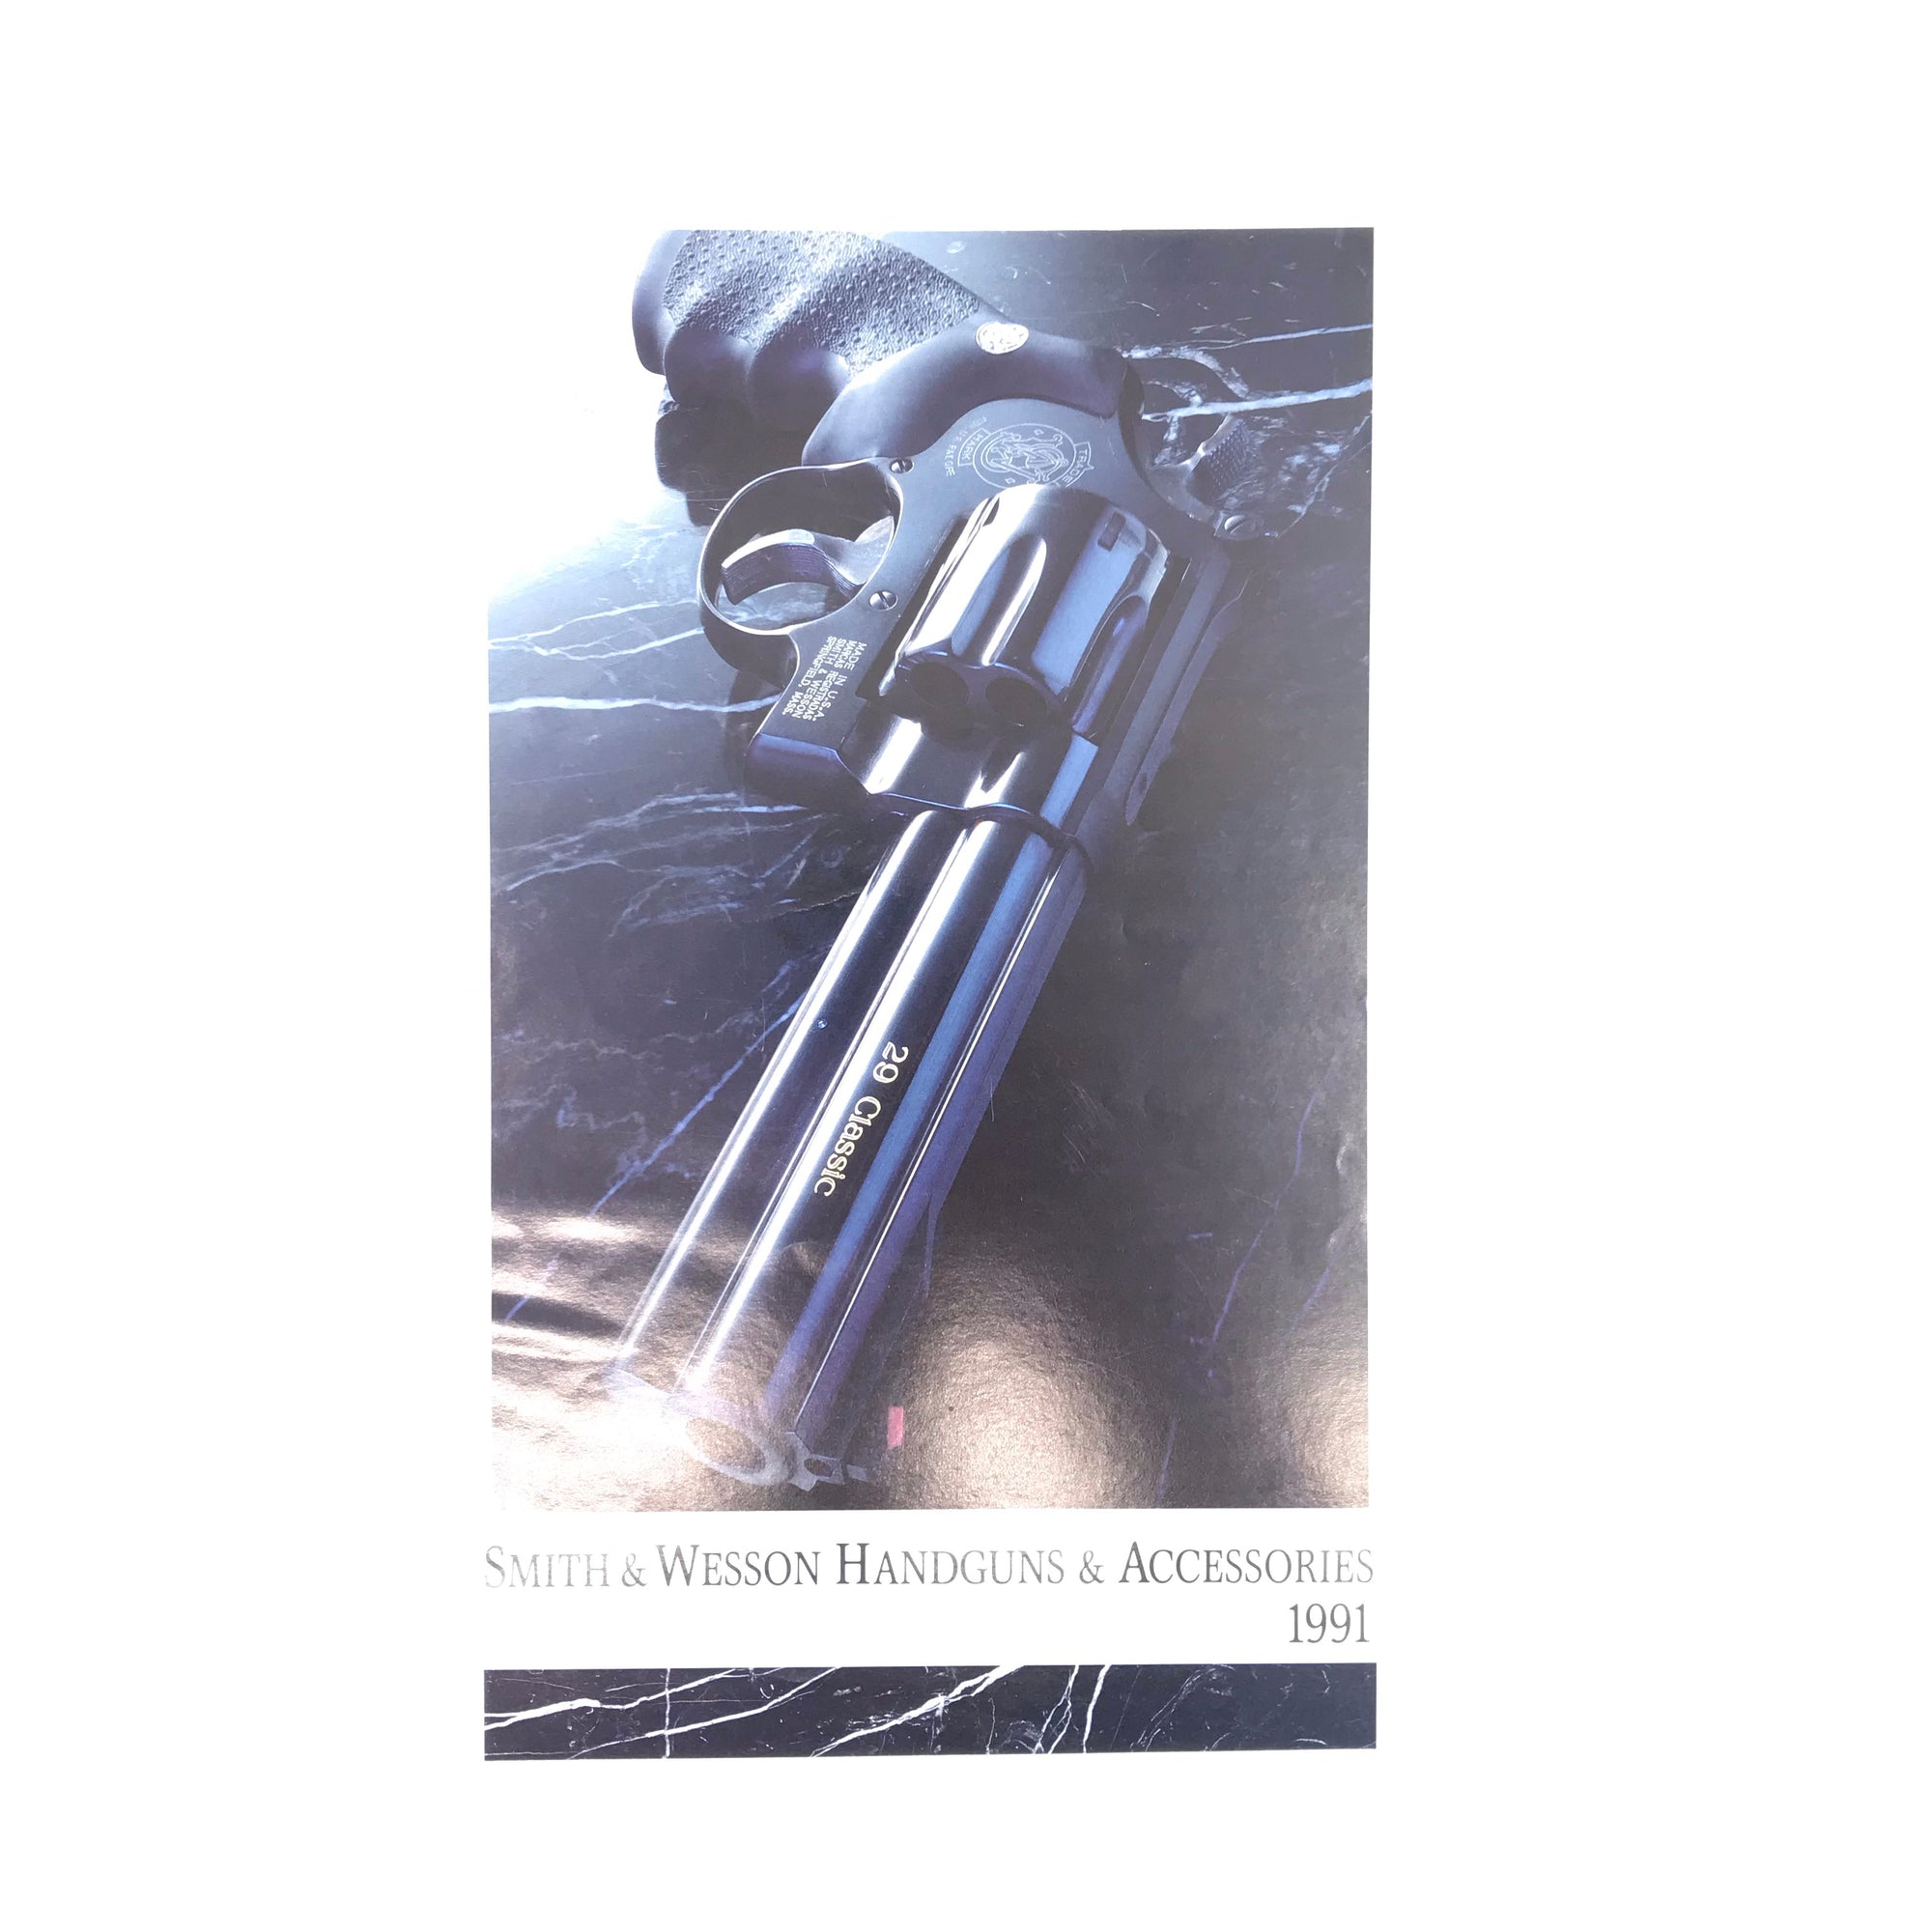 1991 Smith & Wesson Handguns & Accessories Catalogue